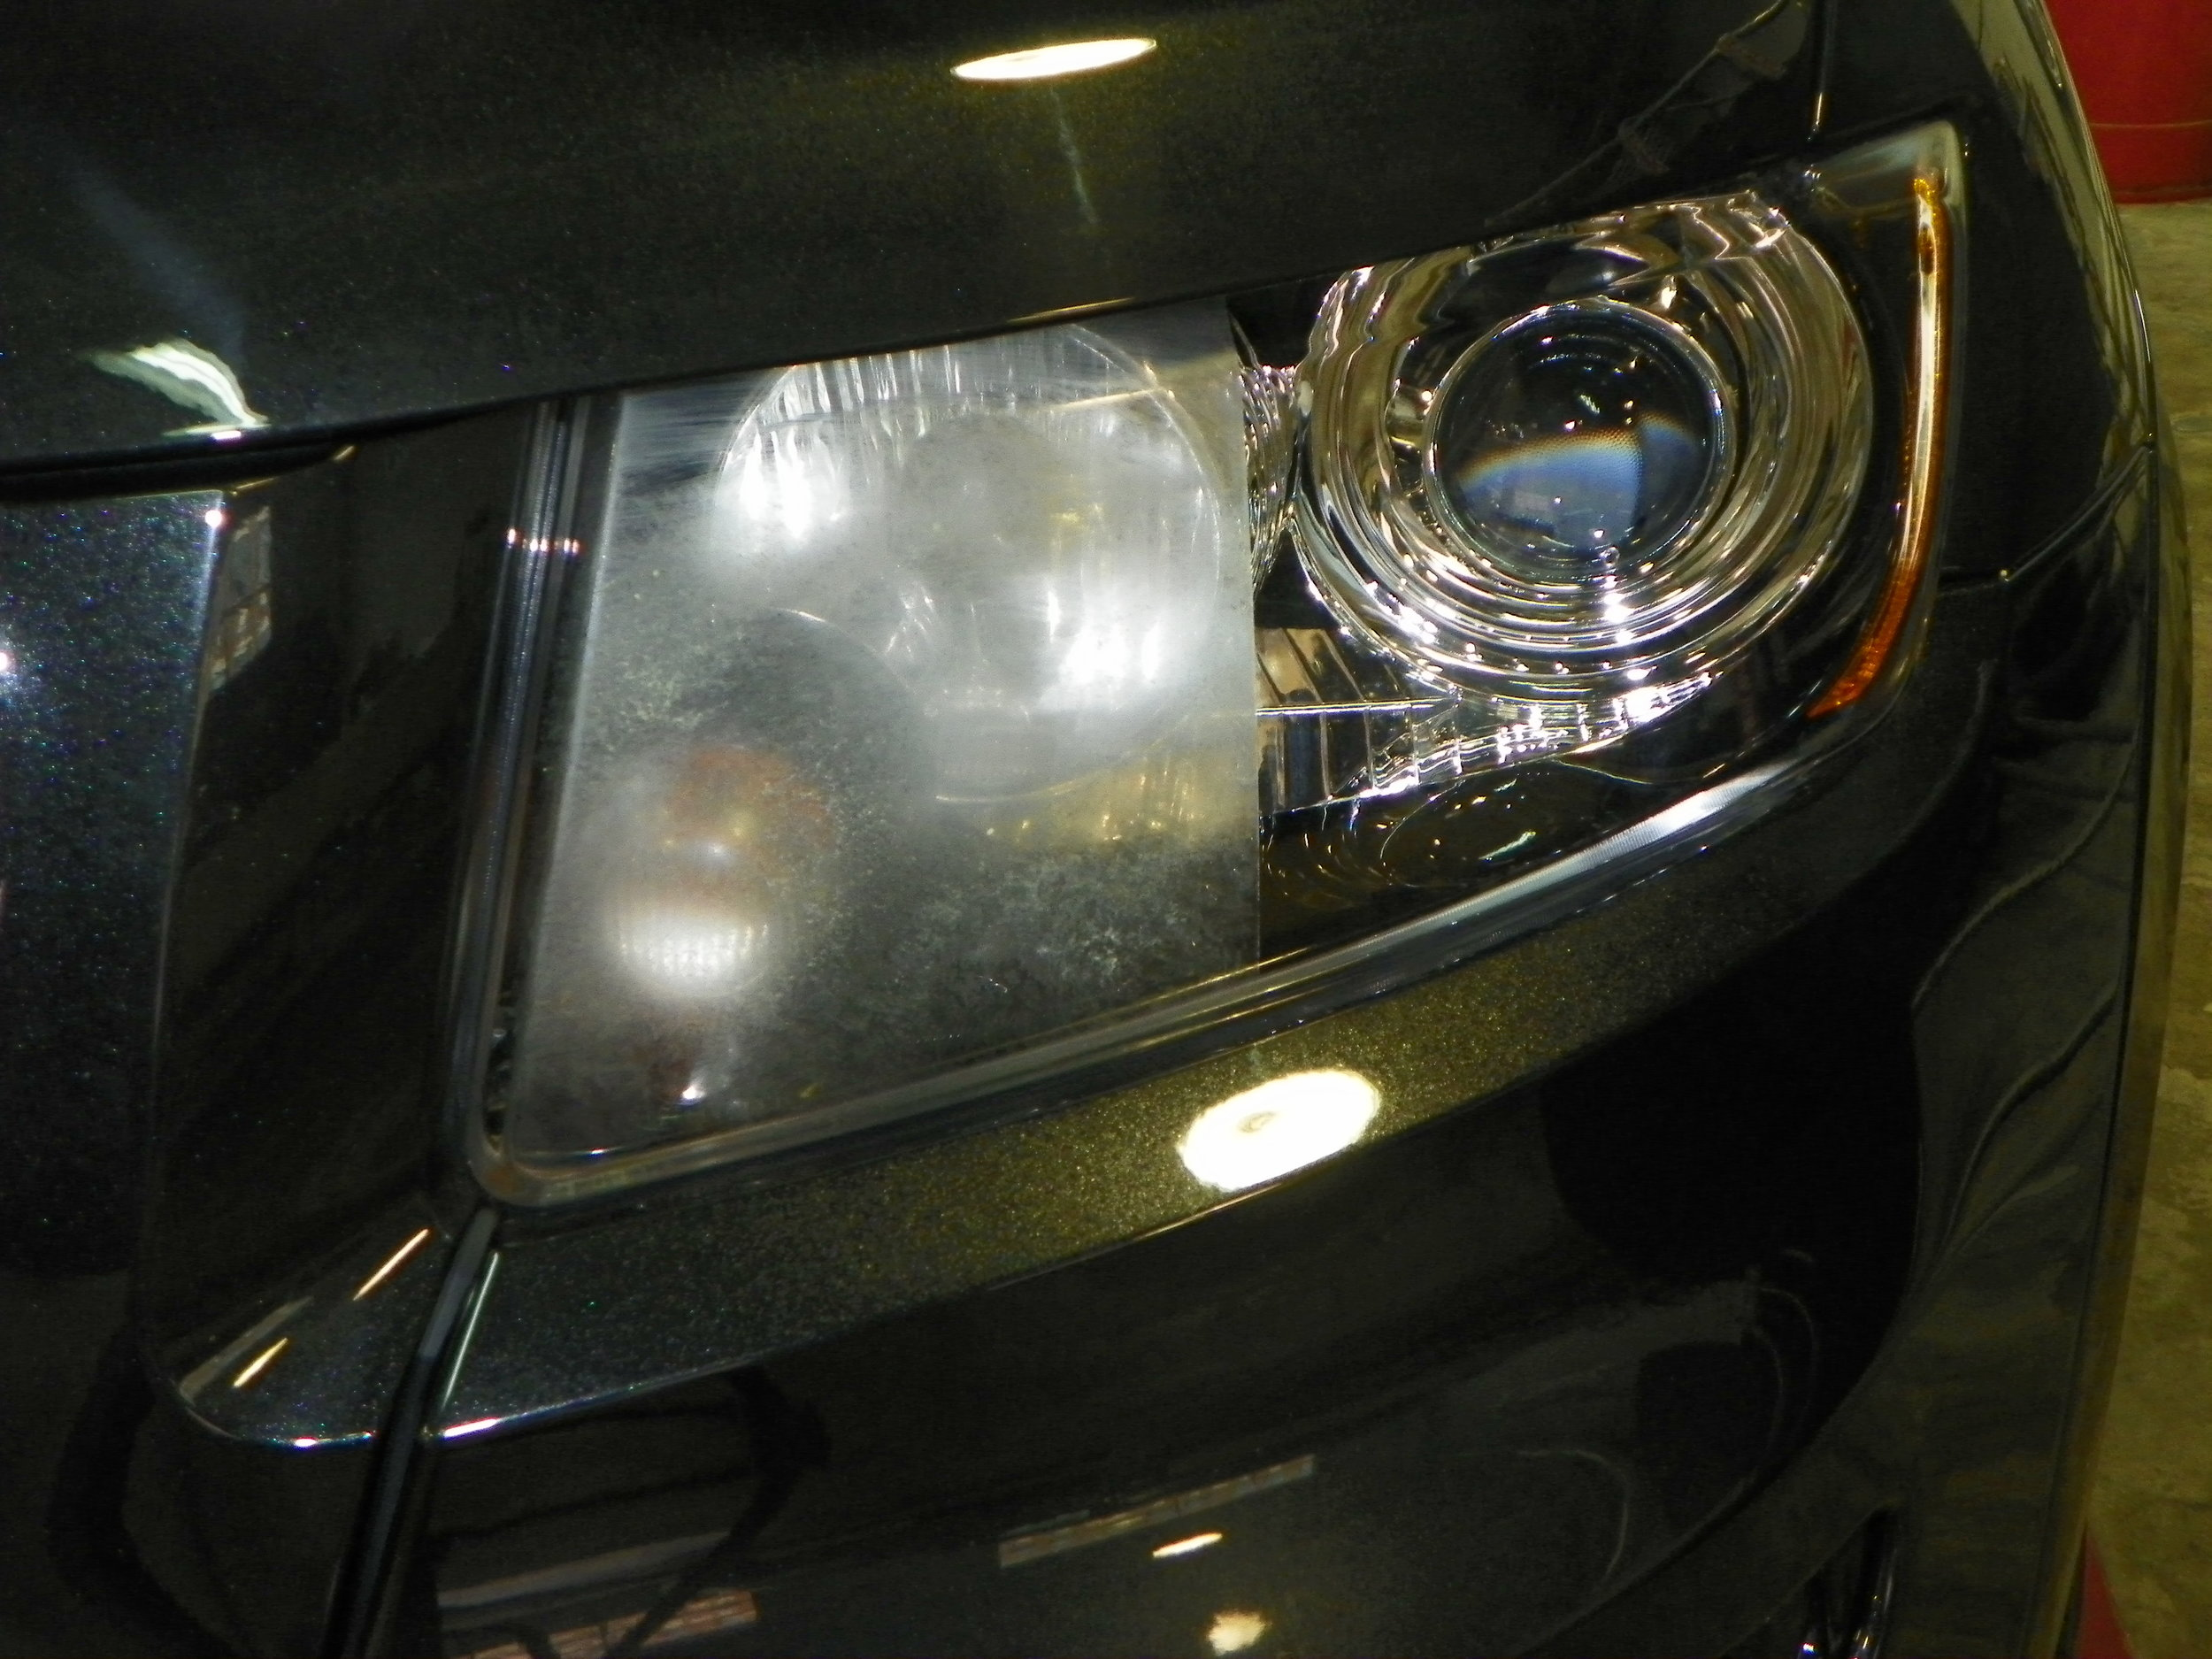 - Often overlooked, faded or cloudy headlights can be corrected fairly quickly. The difference in light output will amaze you so much you'll wonder why you didn't have your headlights restored sooner.